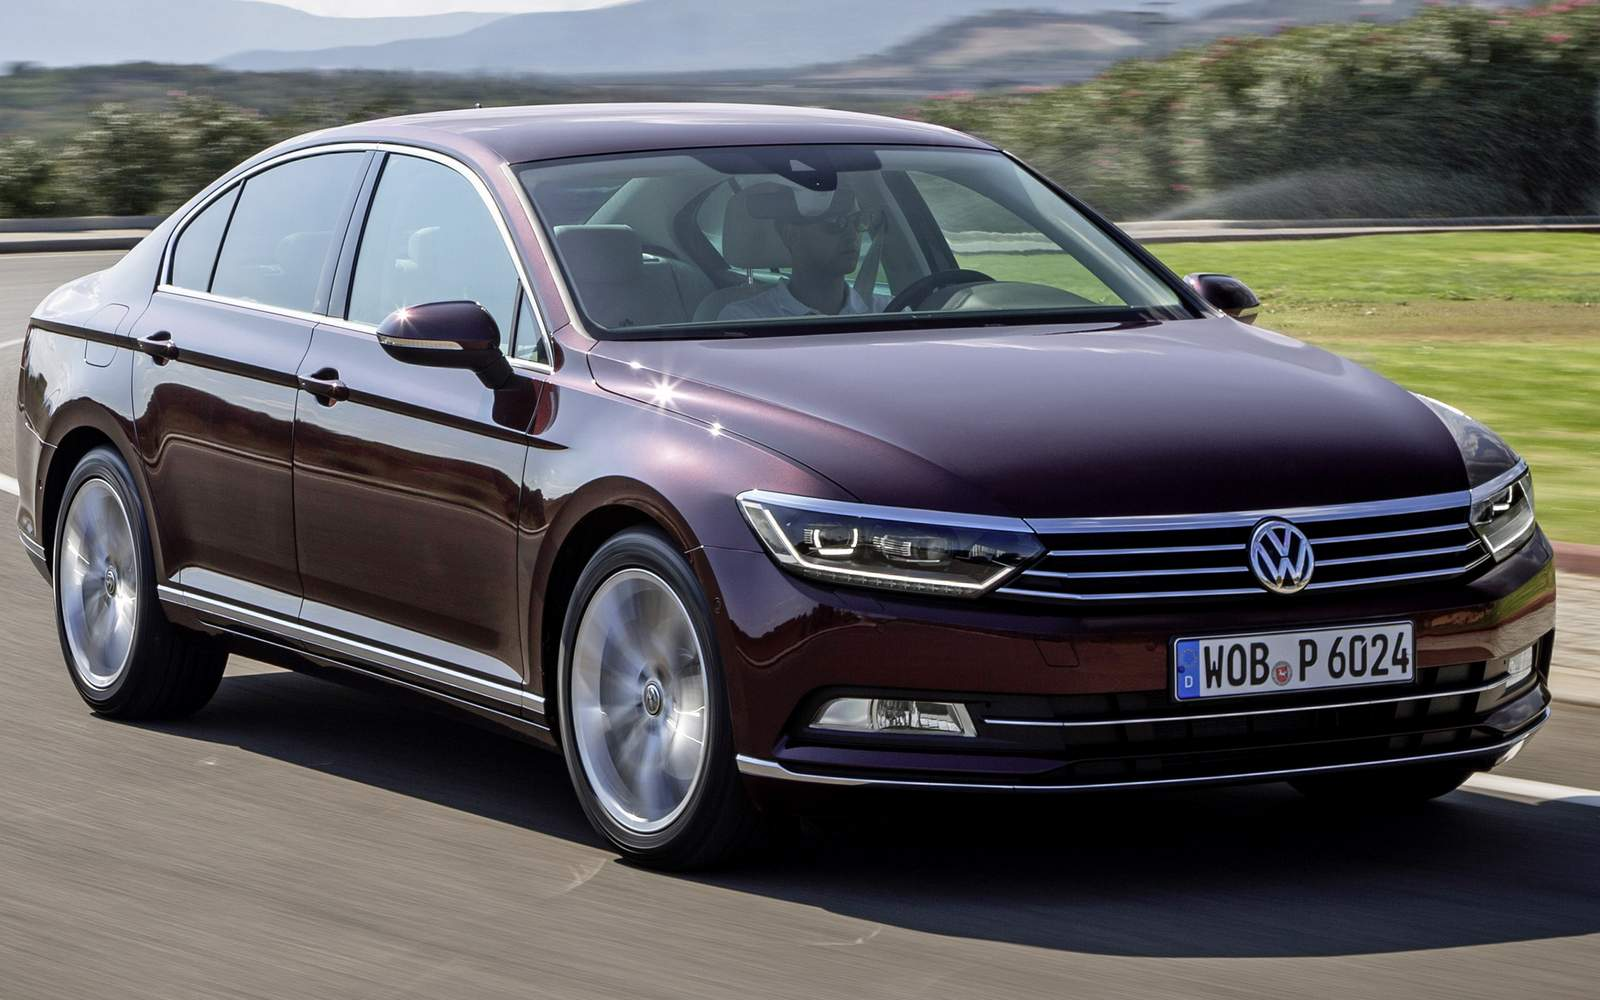 Novo Vw Passat 233 Eleito Carro Do Ano Europeu 2015 Car